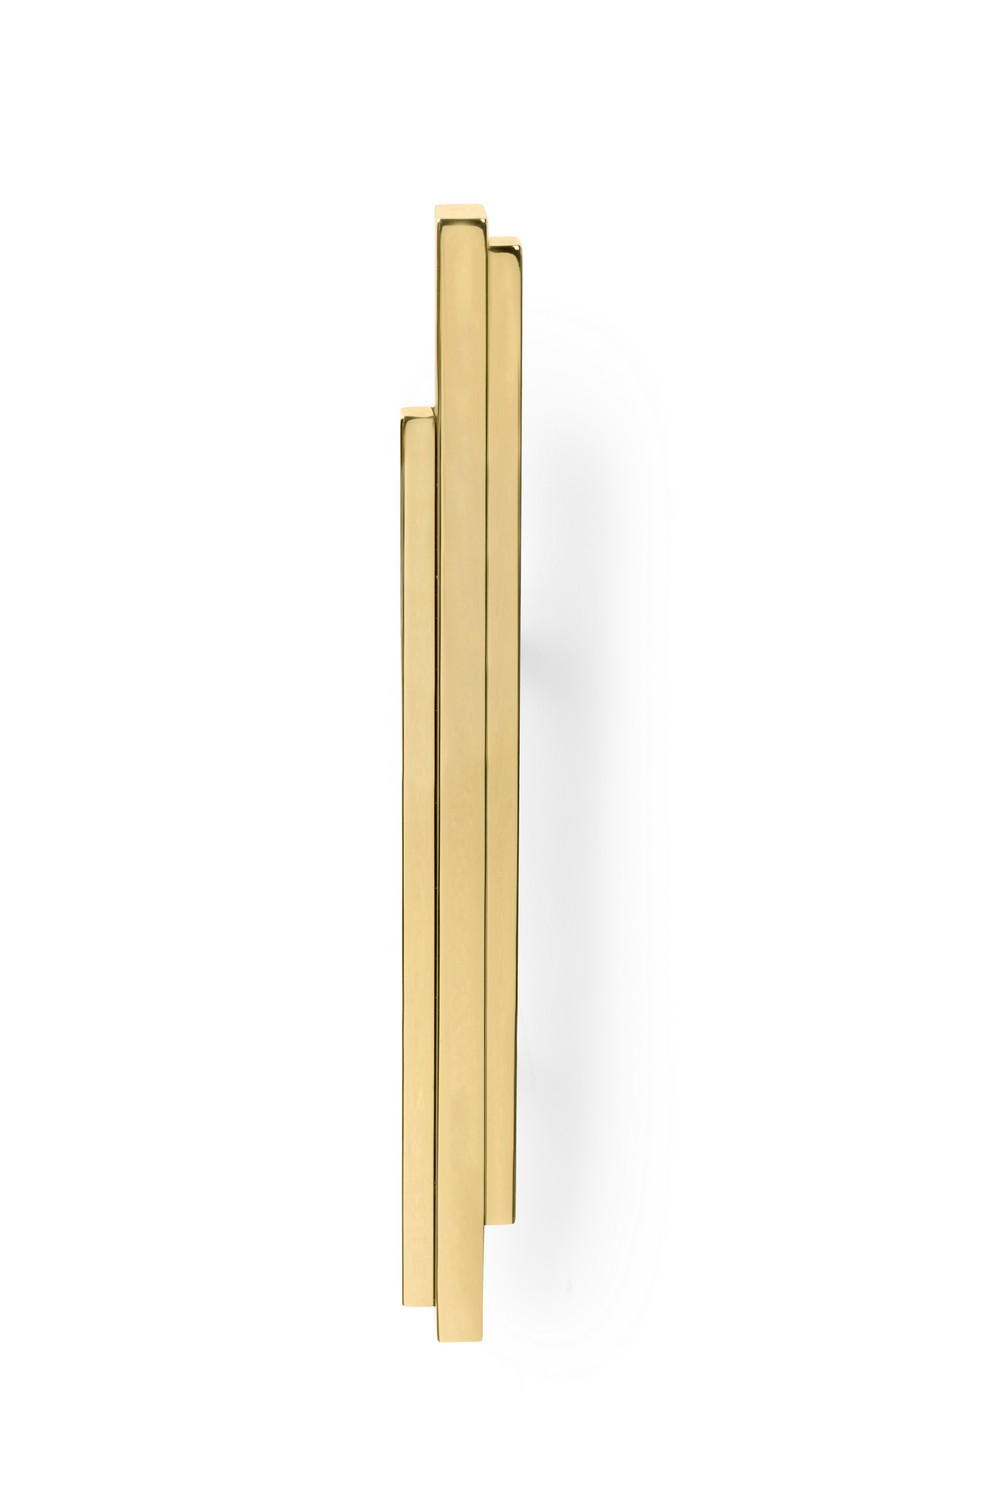 Hospitality Design The Best Door Pulls to Use in Fashionable Projects 3